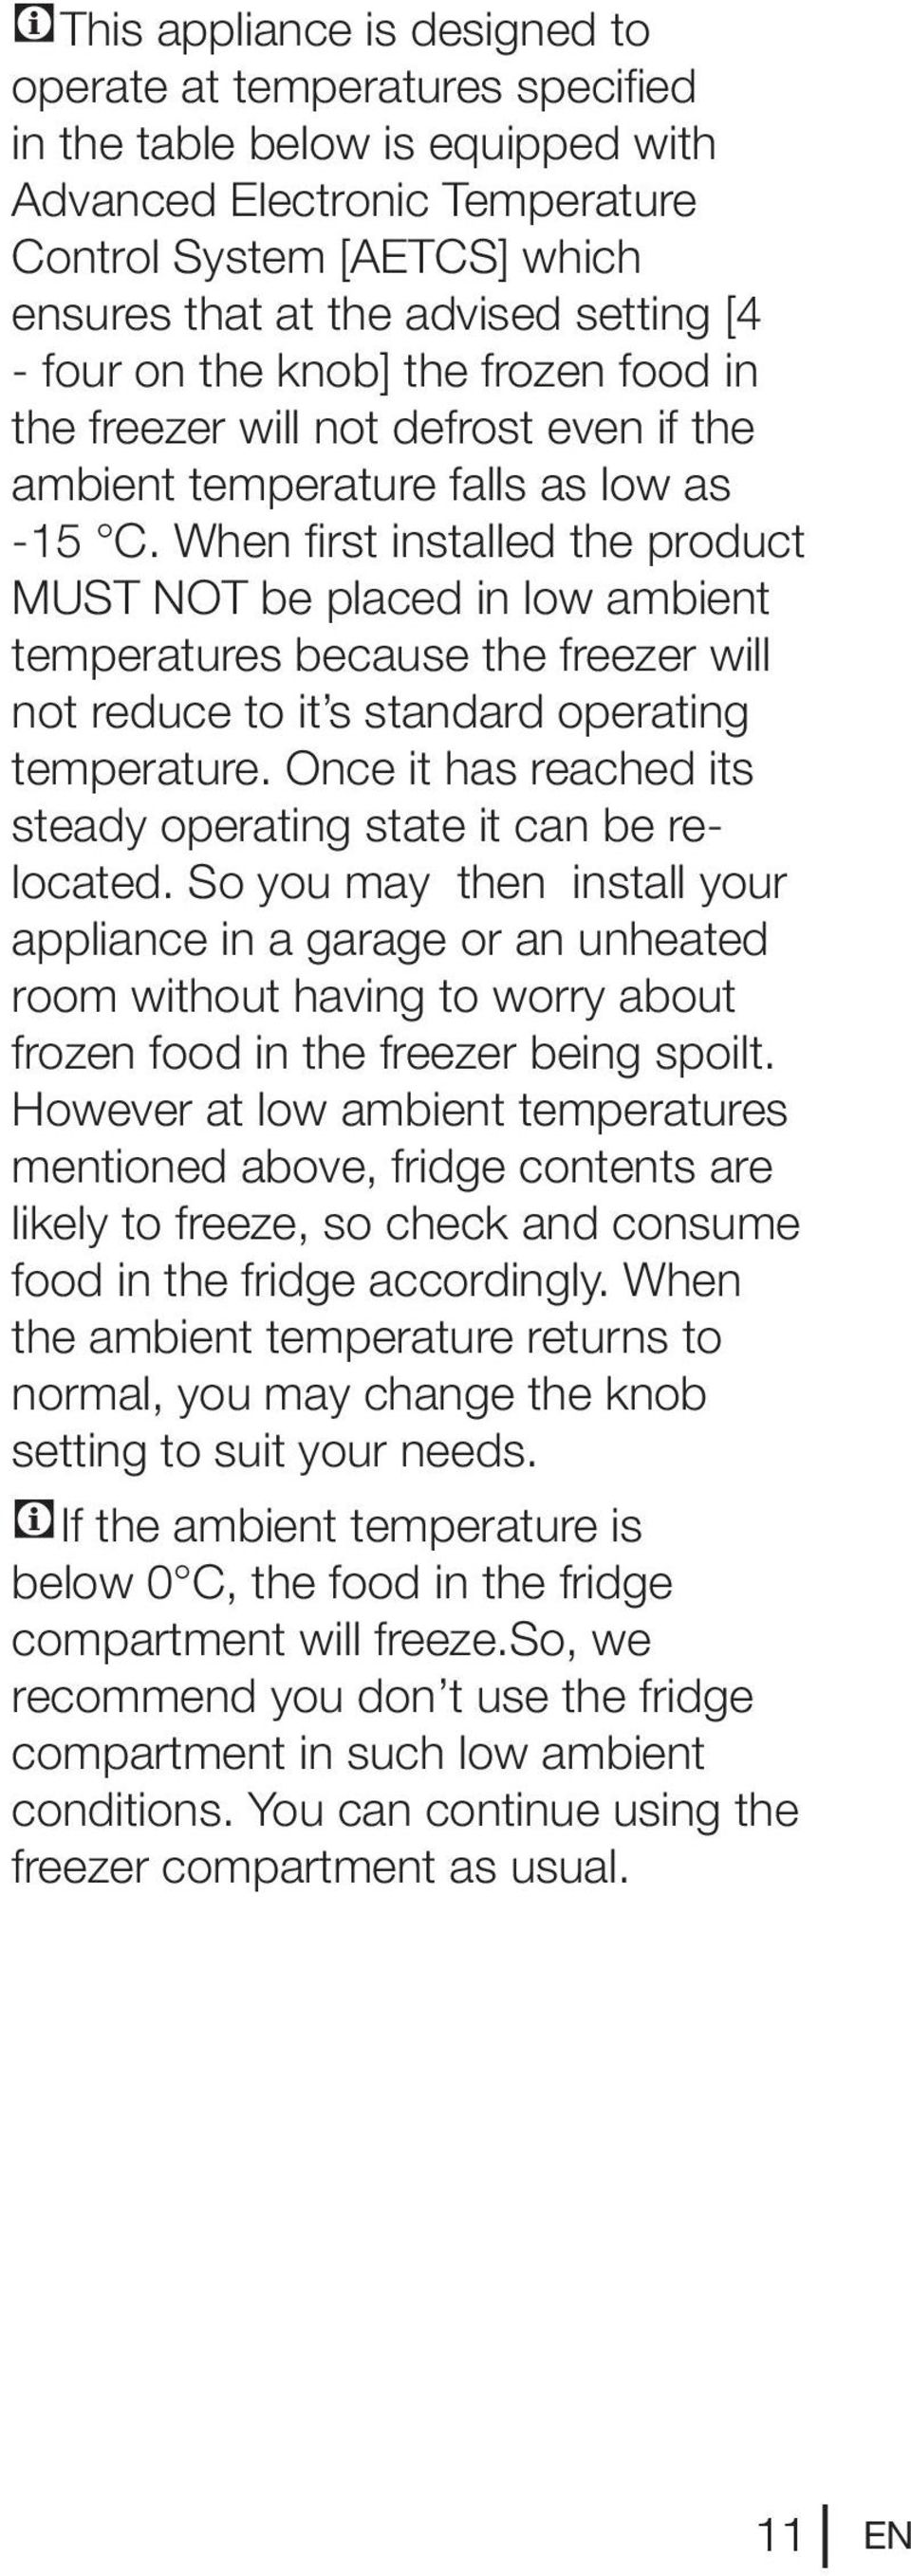 When first installed the product MUST NOT be placed in low ambient temperatures because the freezer will not reduce to it s standard operating temperature.